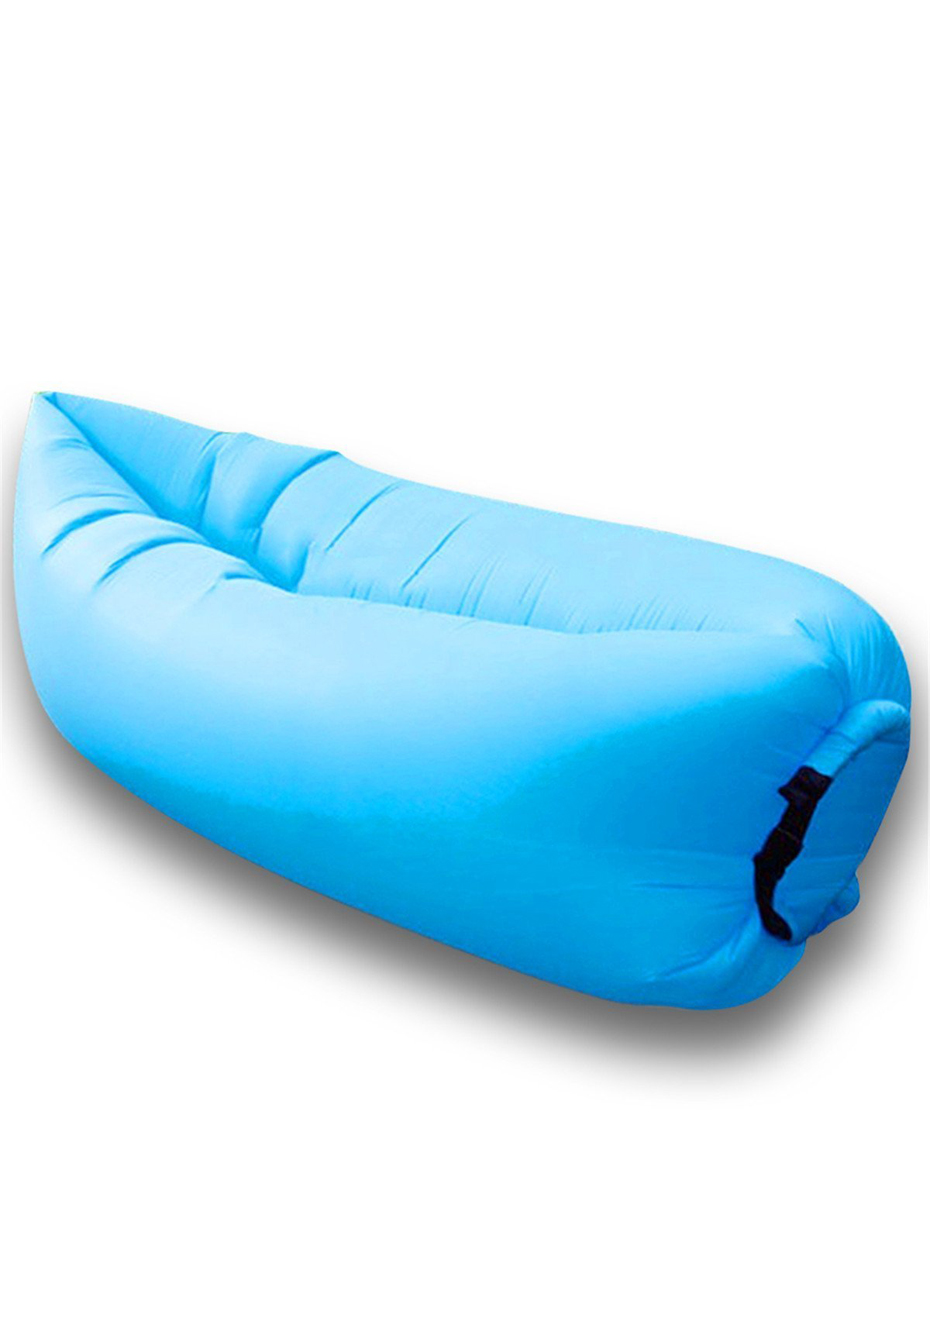 Big Inflatable Couch Inflatable Lounger Blue